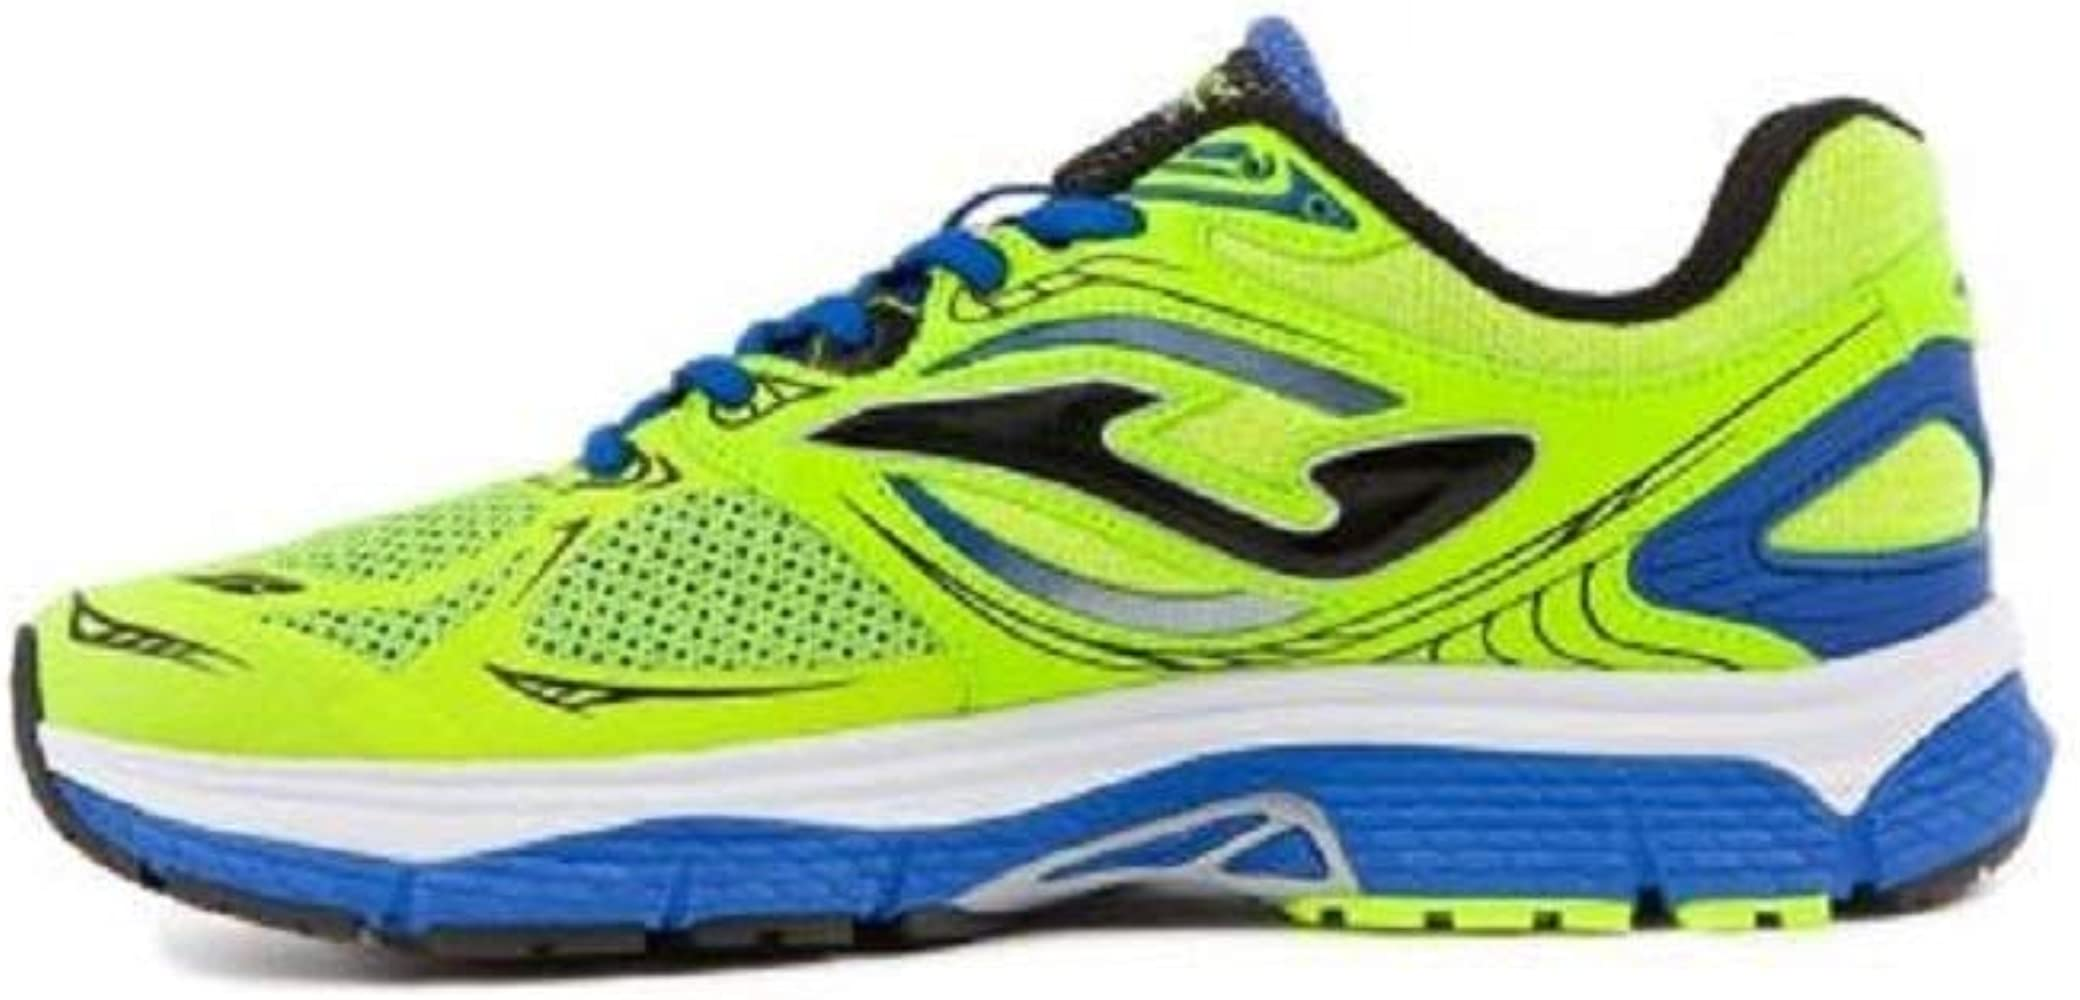 mizuno mens running shoes size 9 youth gold toe twist jersey